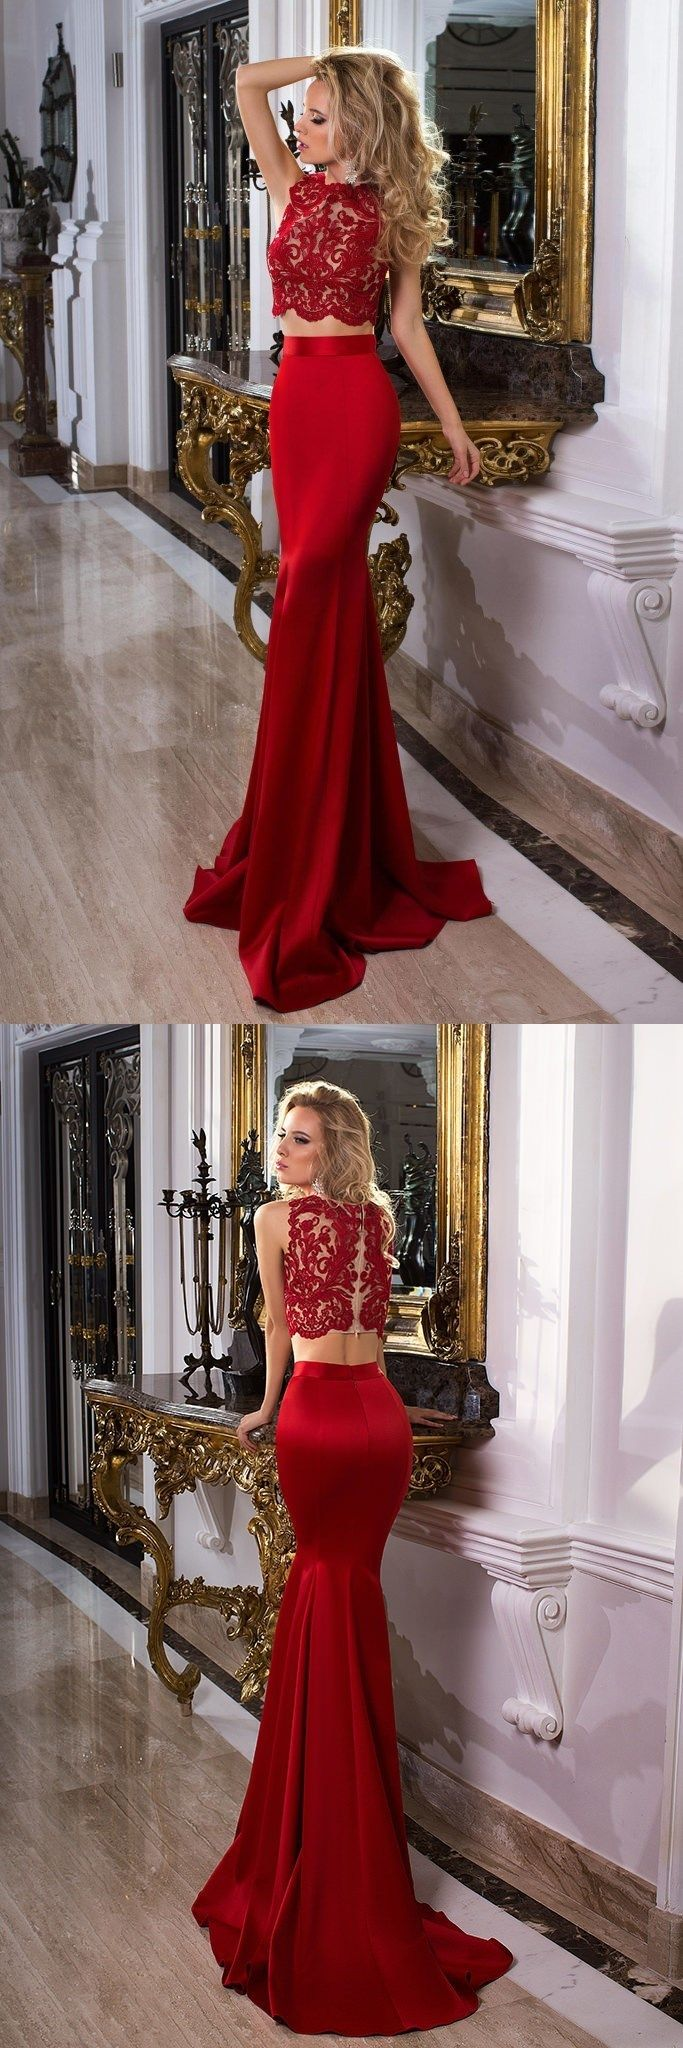 Prom dress red dress fitted dress party dress pieces prom